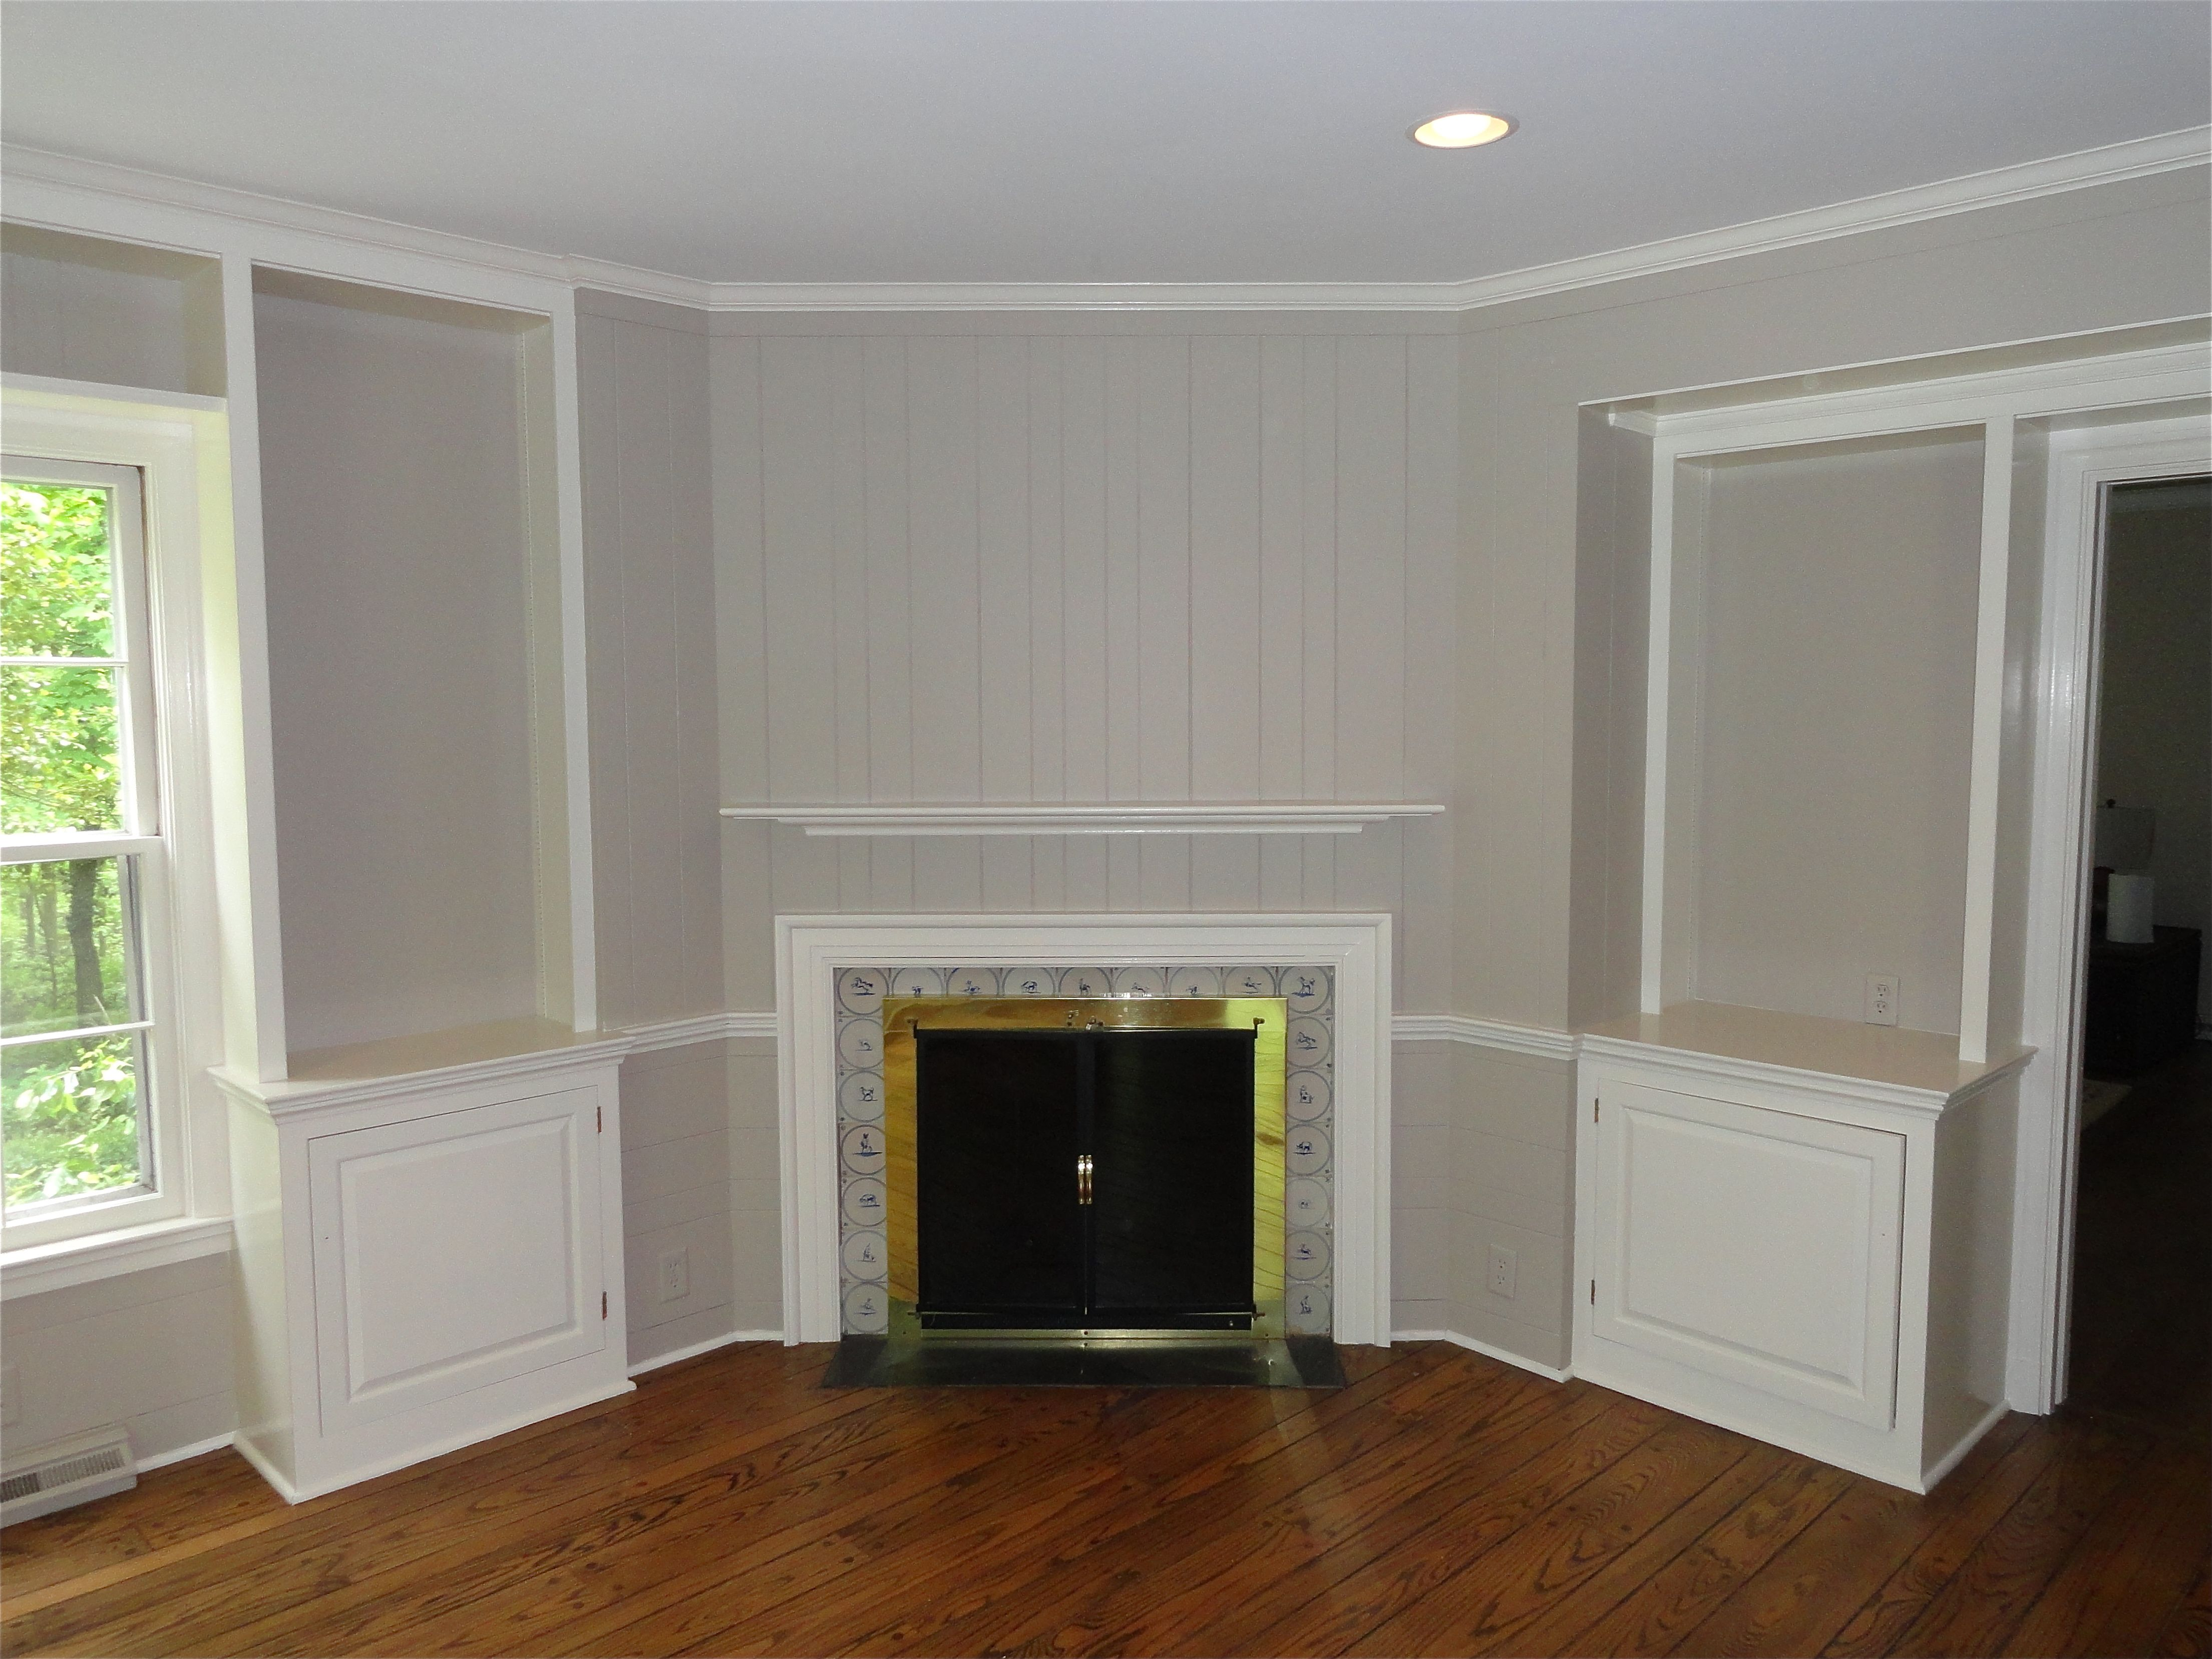 Painting over wood paneling before and after - Best 20 Painting Wood Paneling Ideas On Pinterest White Wood Paneling Paneling Makeover And Paint Wood Paneling